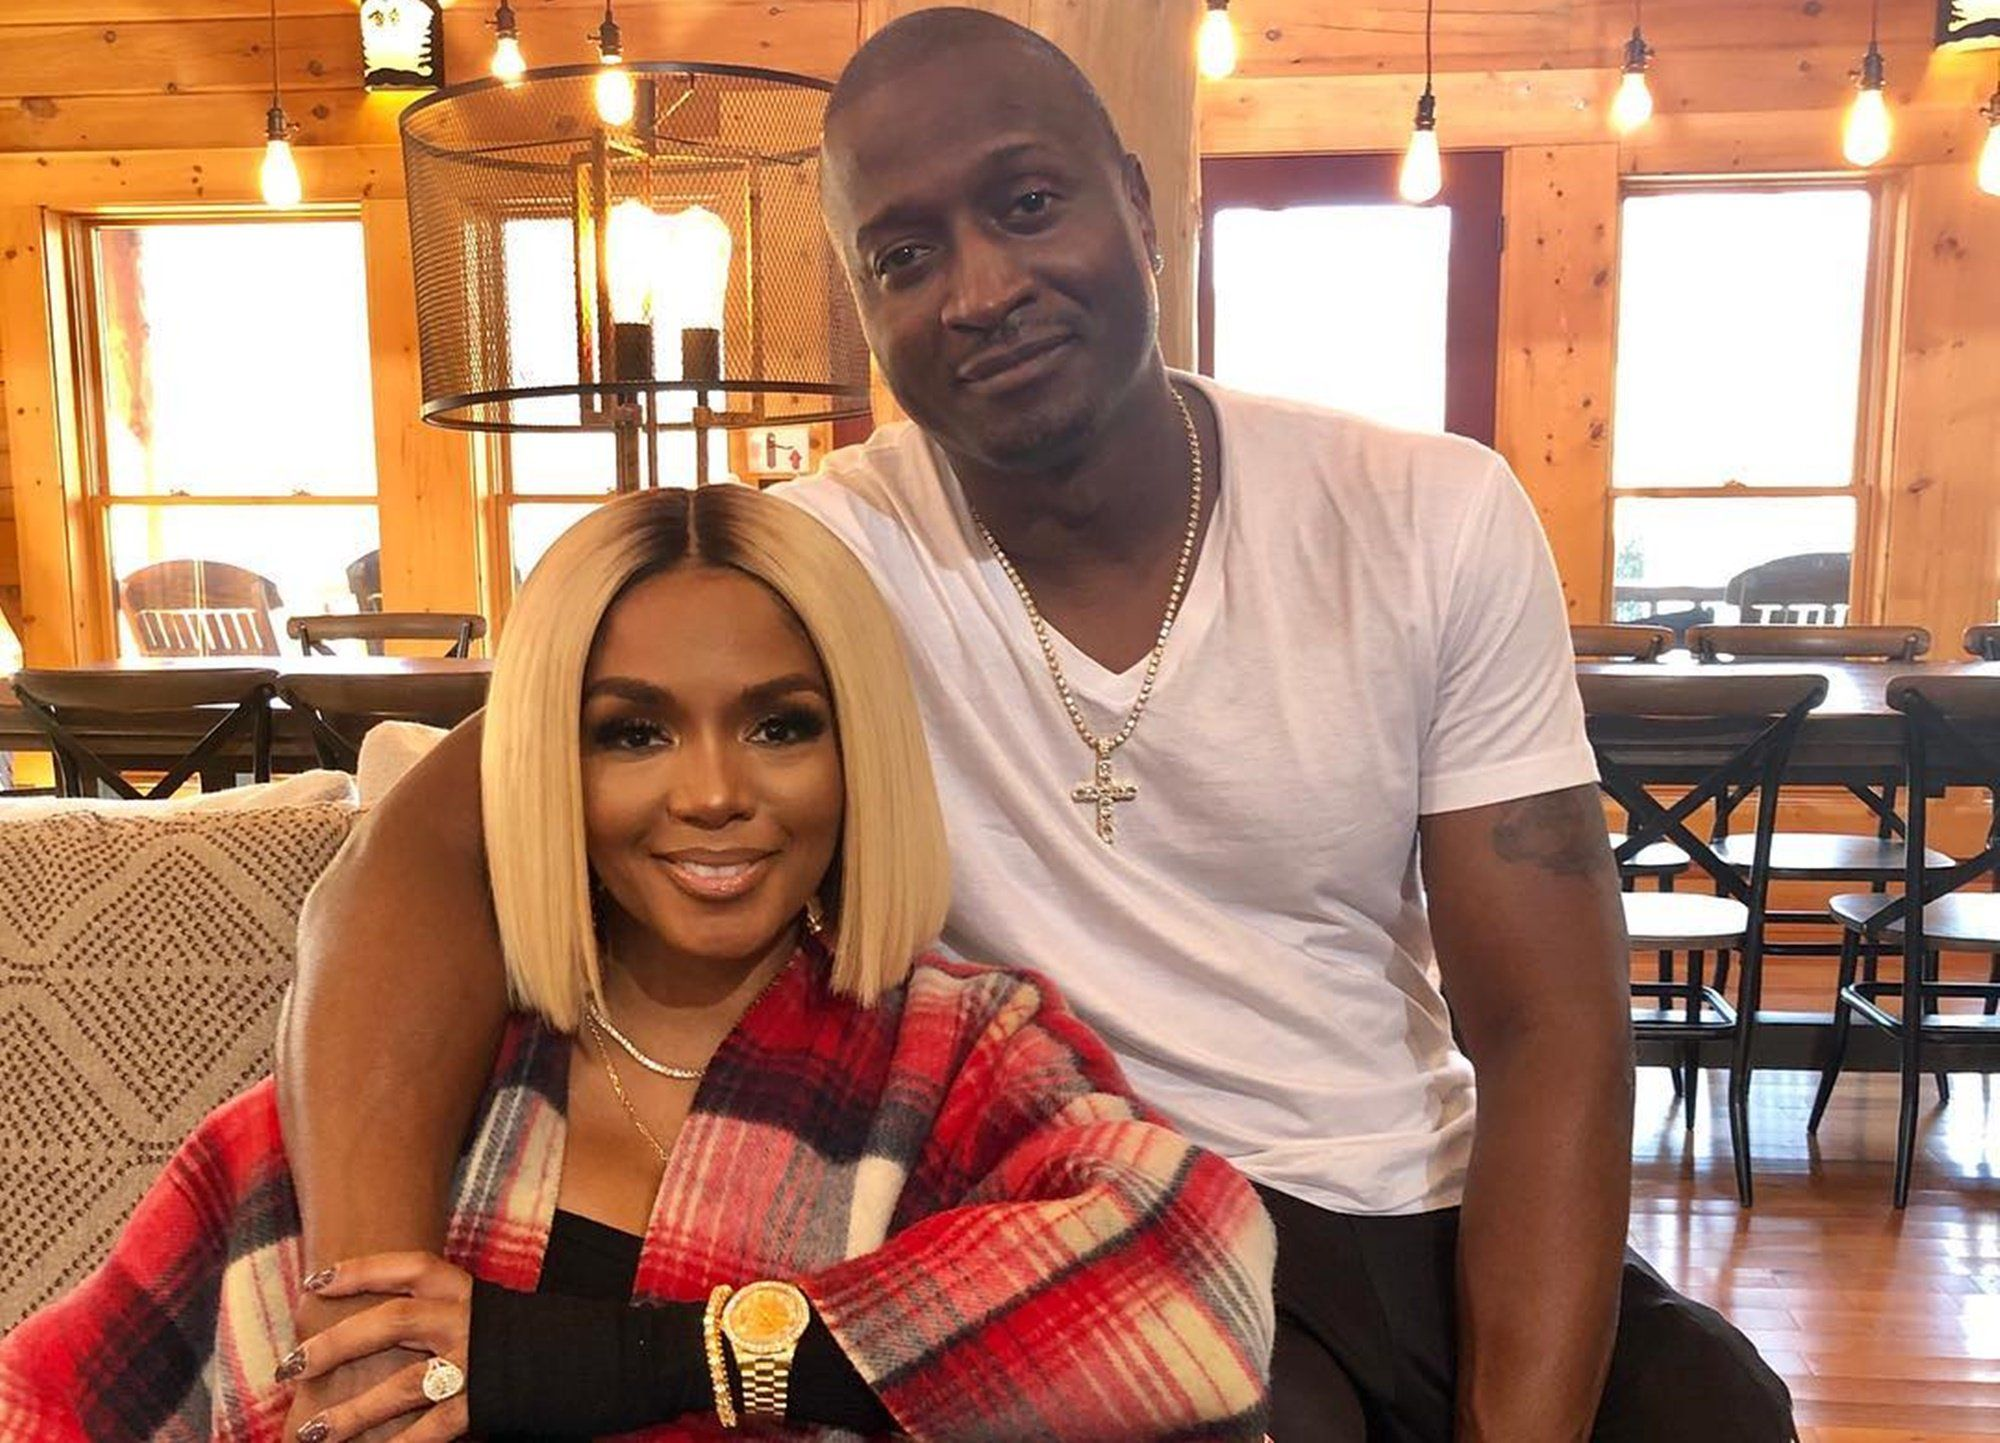 Kirk Frost's Clips Featuring Rasheeda Frost's 84-Year-Old Grandmother Has Fans In Awe – Check Out The Funny Lady!